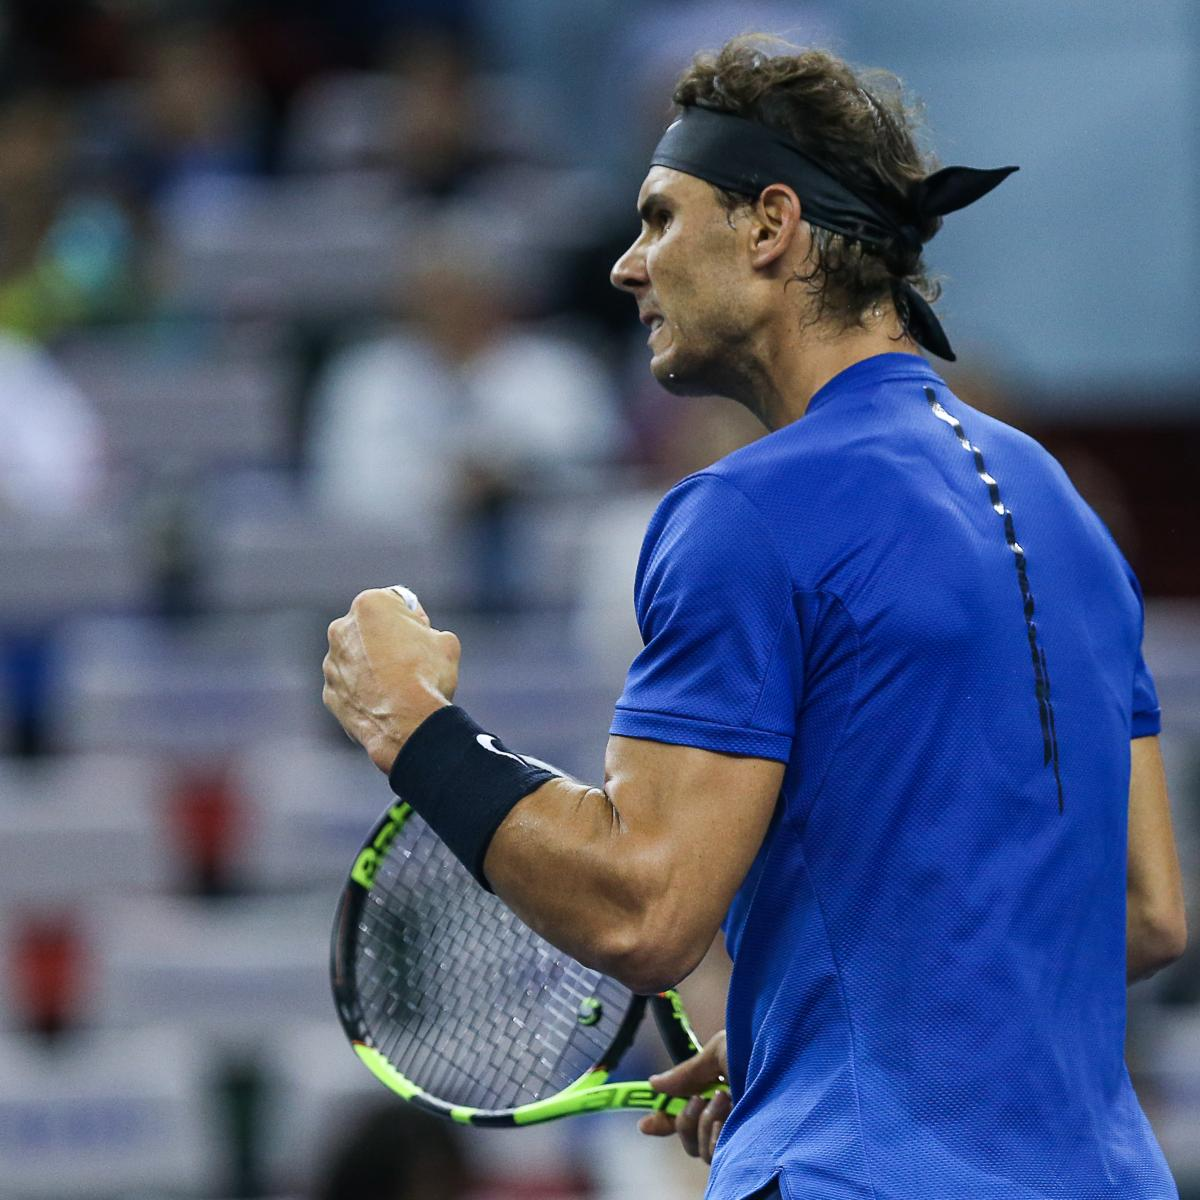 Rafael Nadal's Win Highlights Thursday's 2017 Shanghai Rolex Masters Results